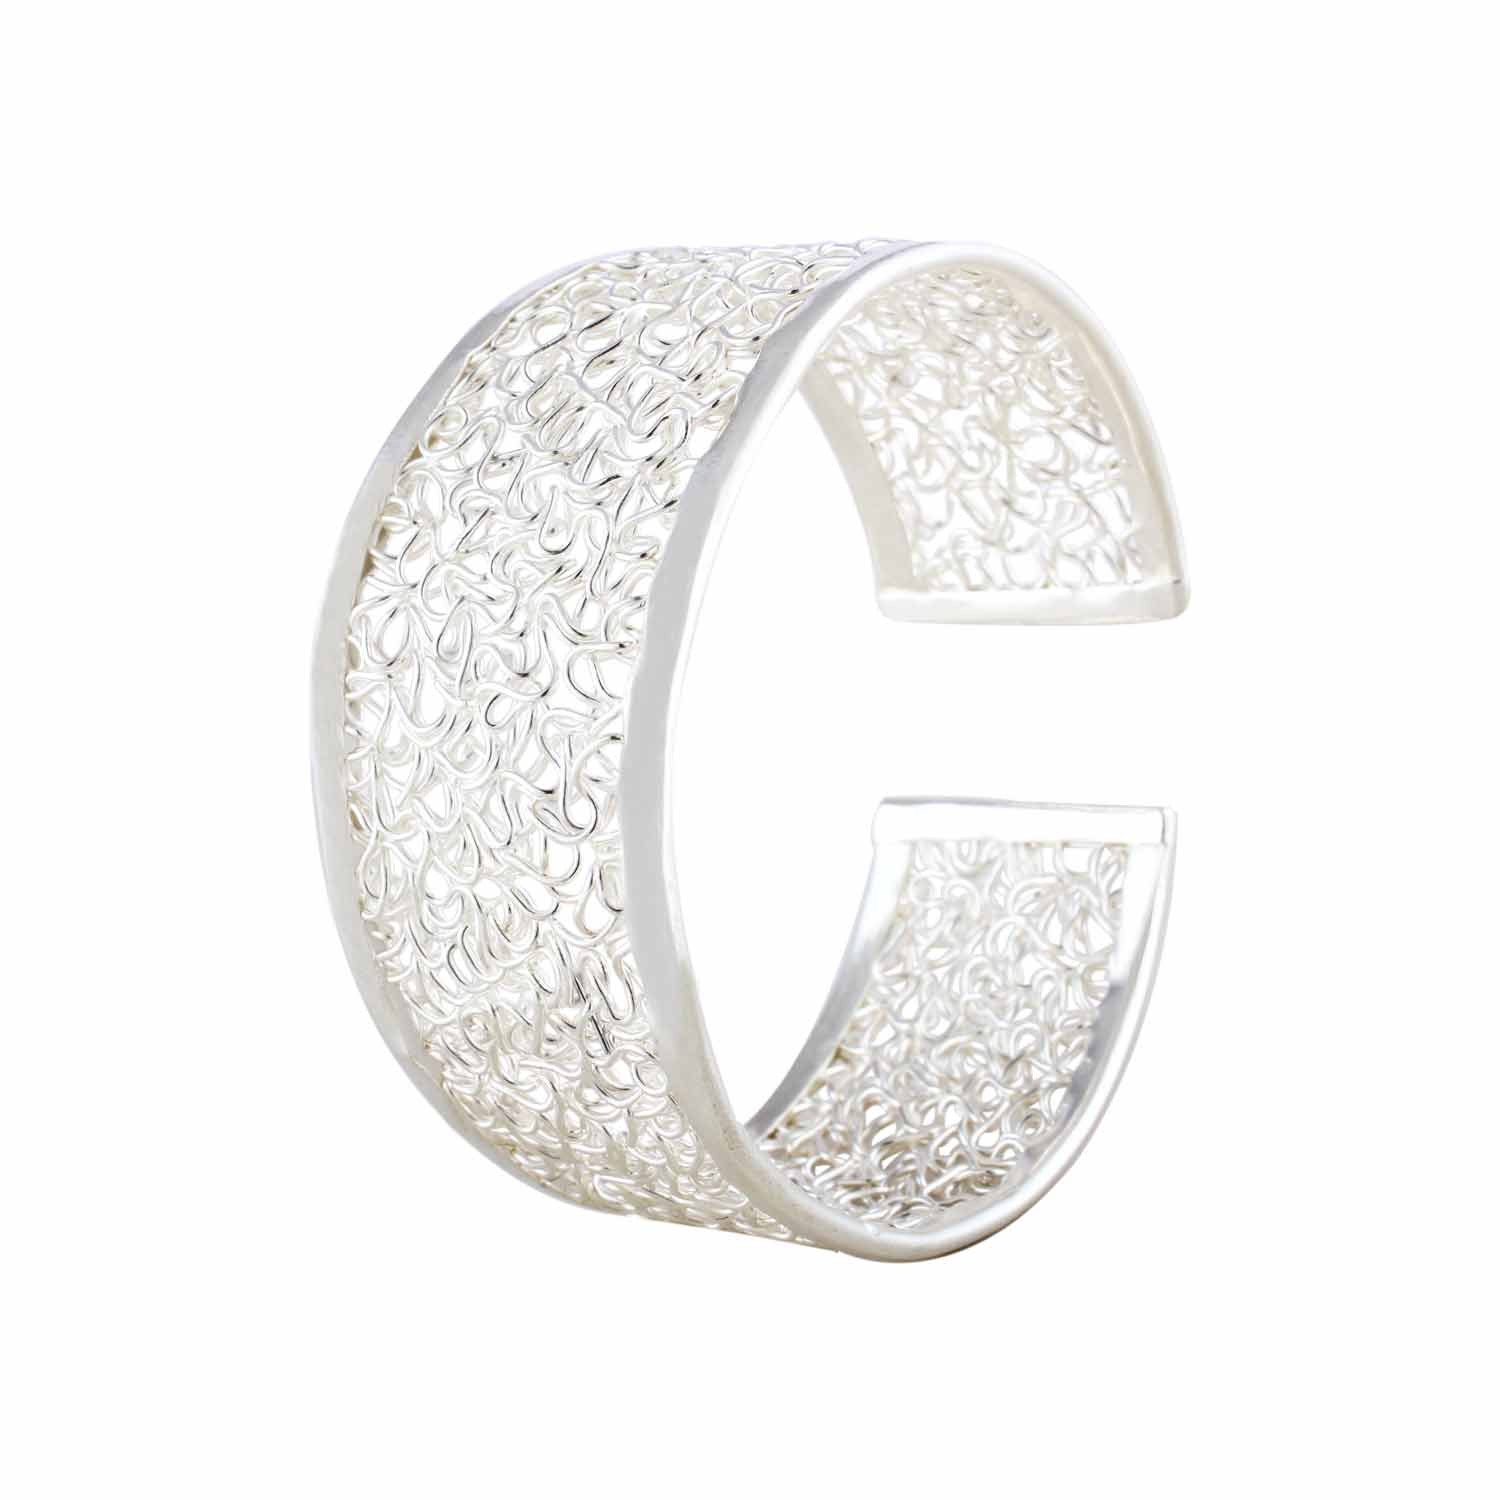 Adjustable Sterling Silver Filigree Cuff Bangle for Women and Girls